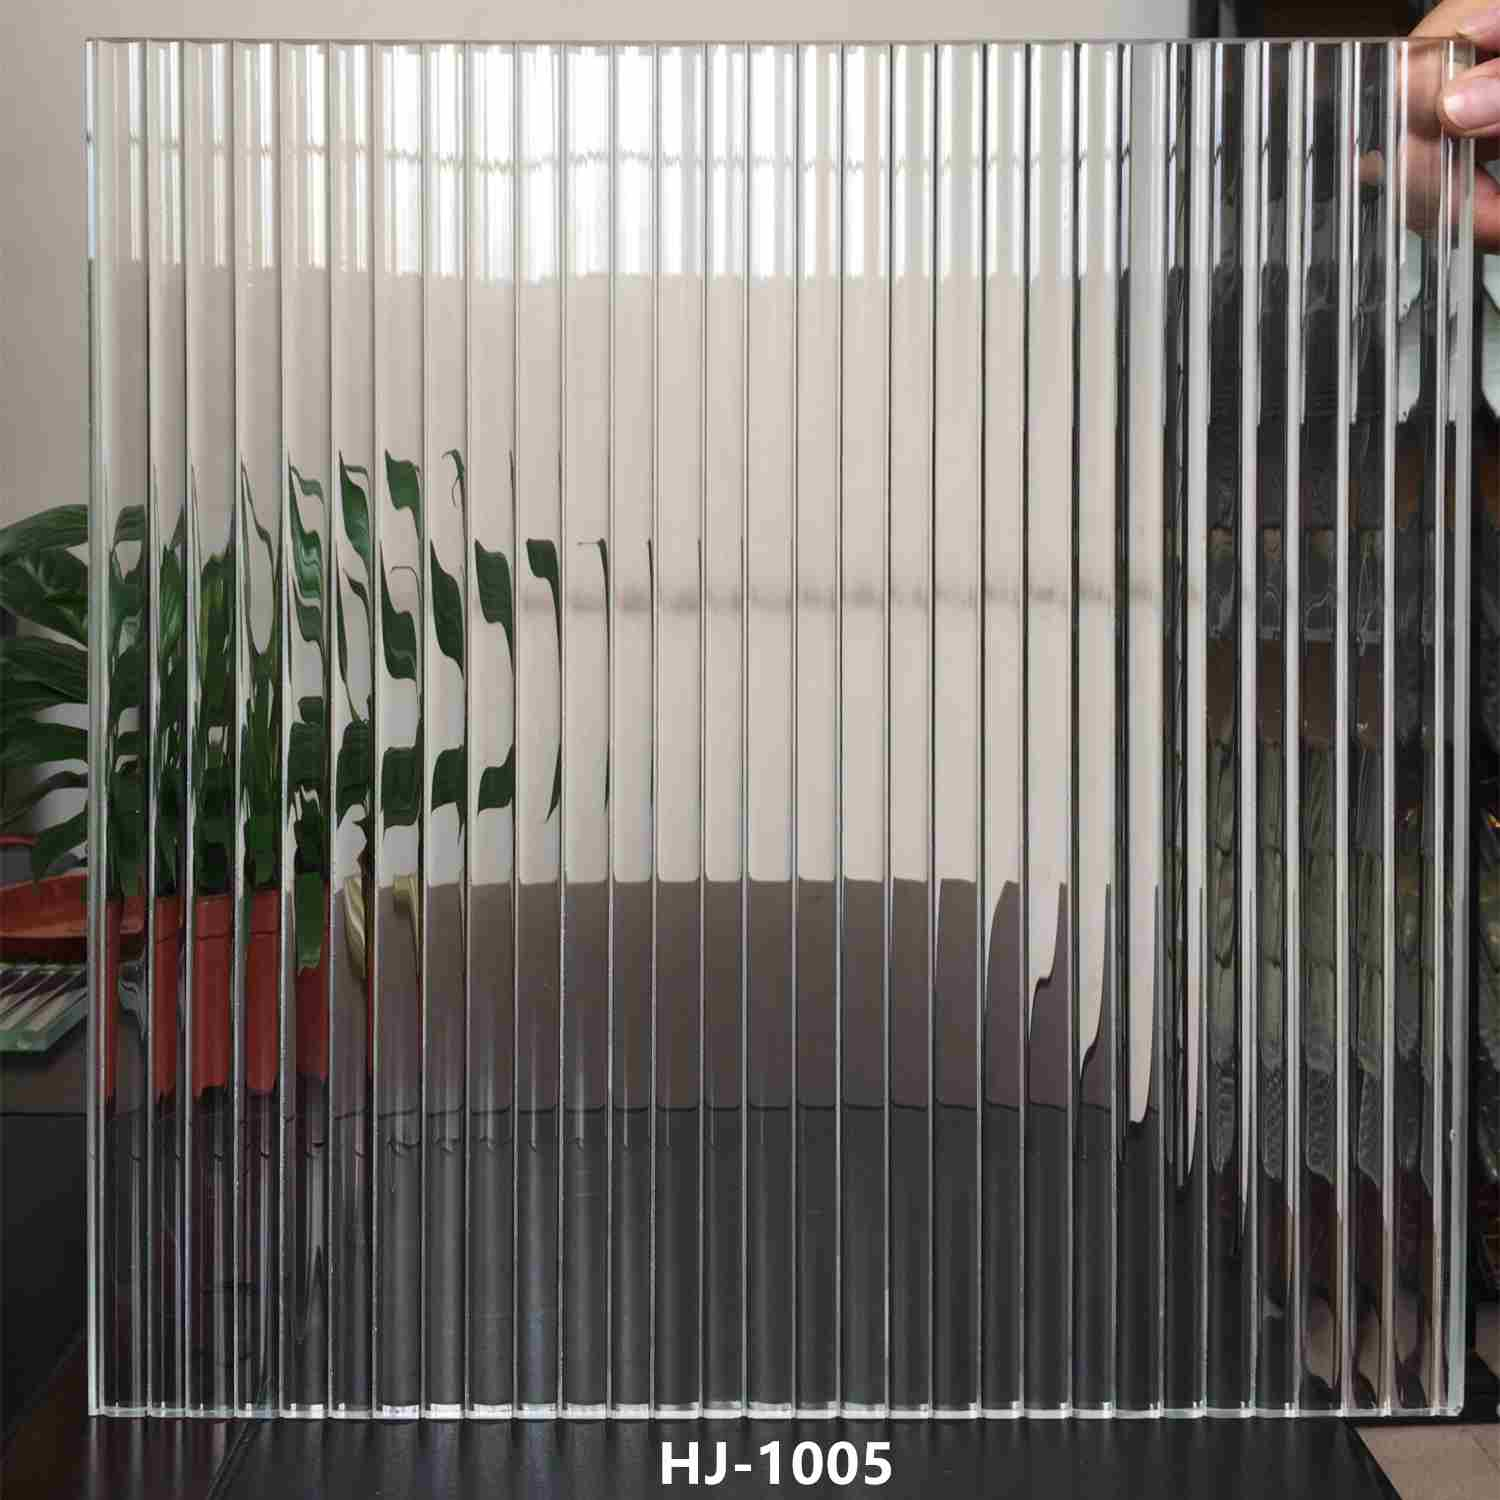 pattern glass hj 1005